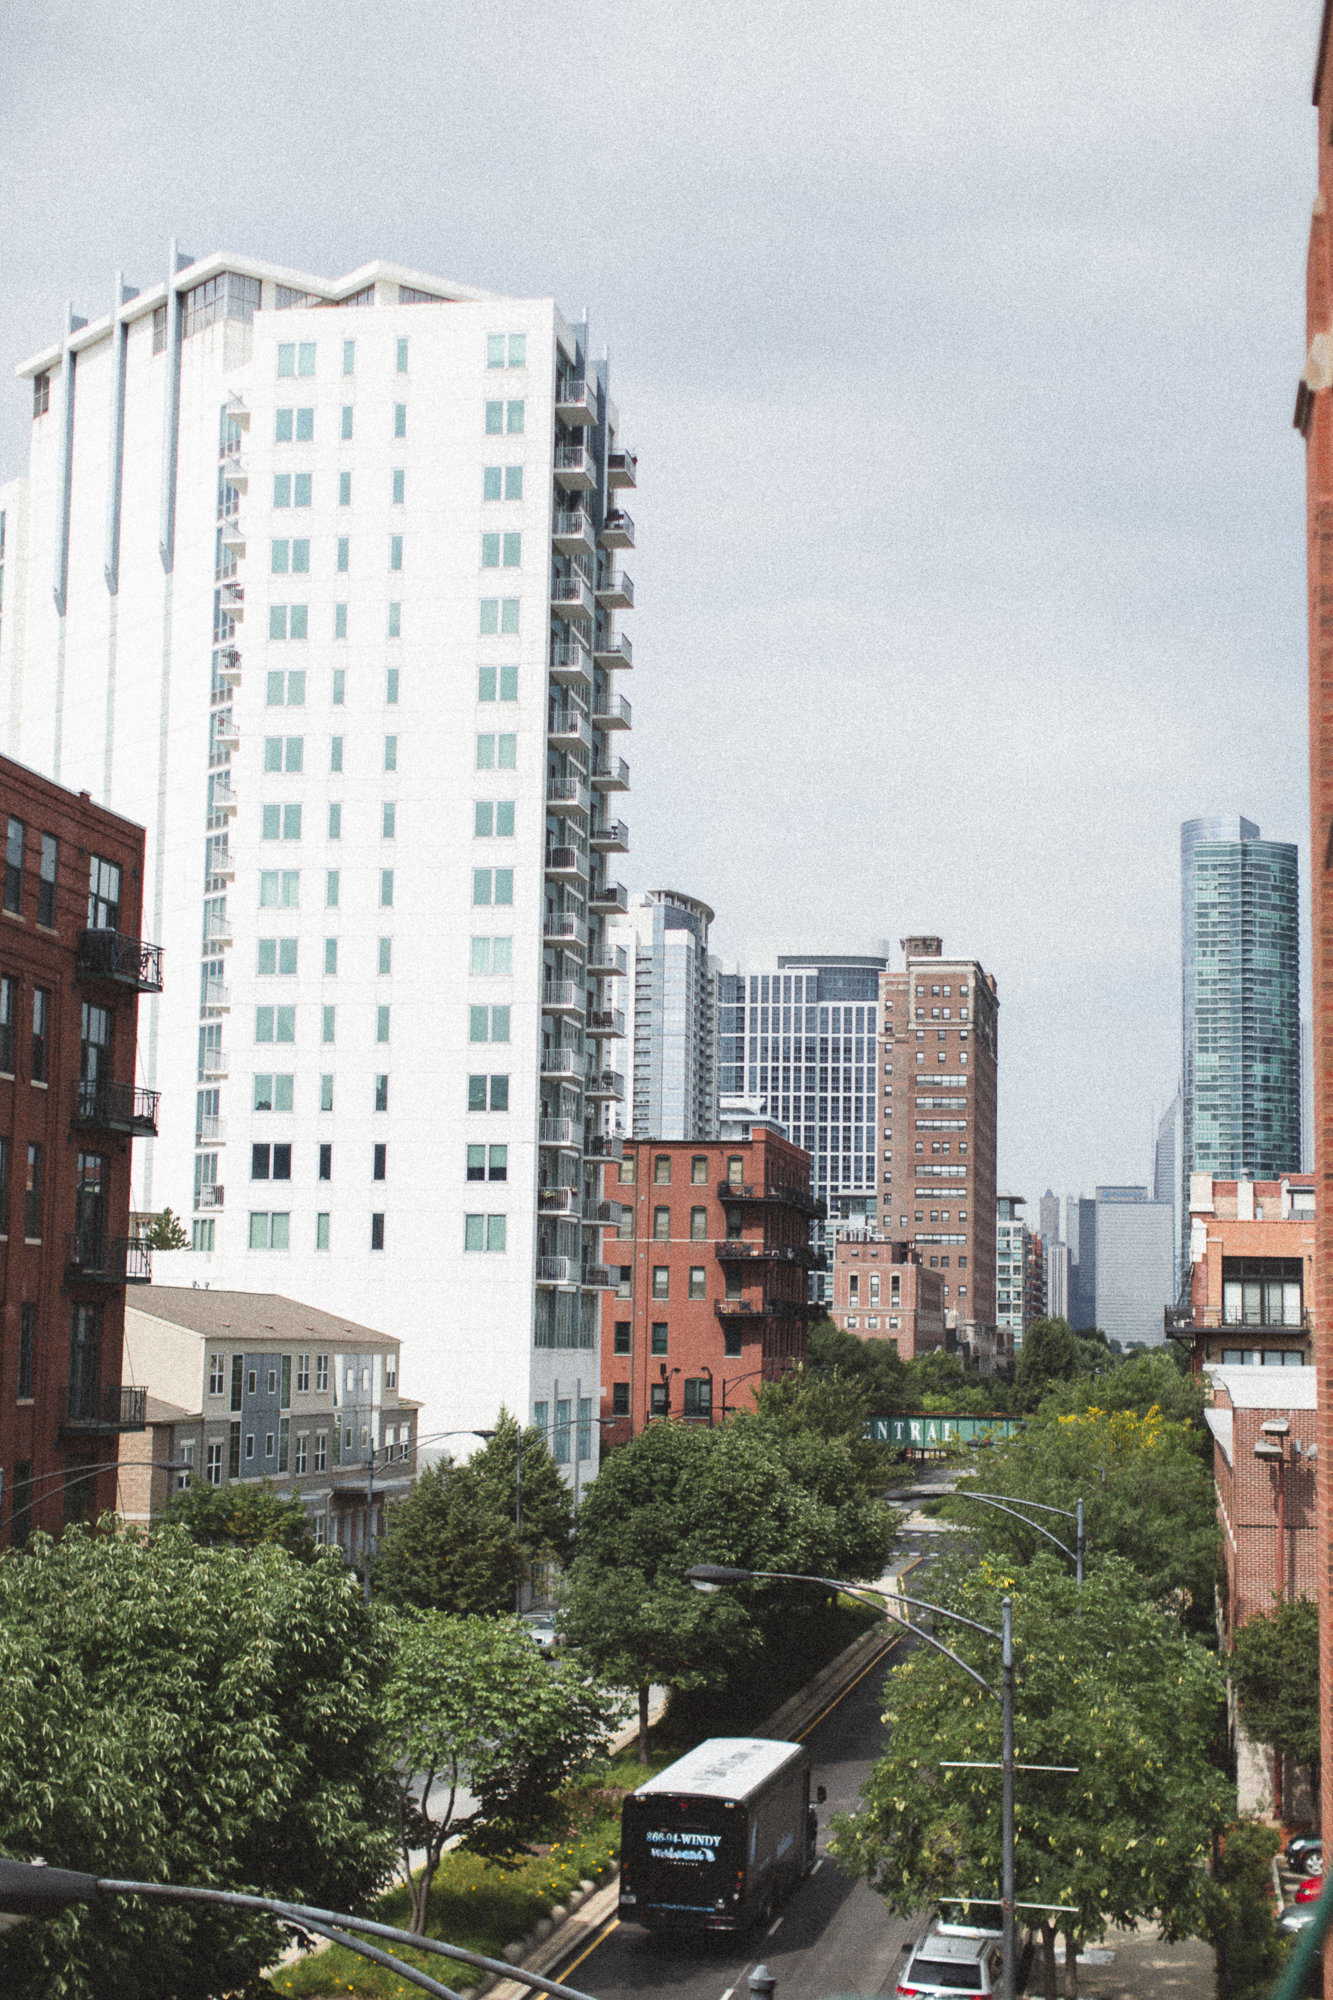 Chicago Illinois - DiBlasio Photography-1